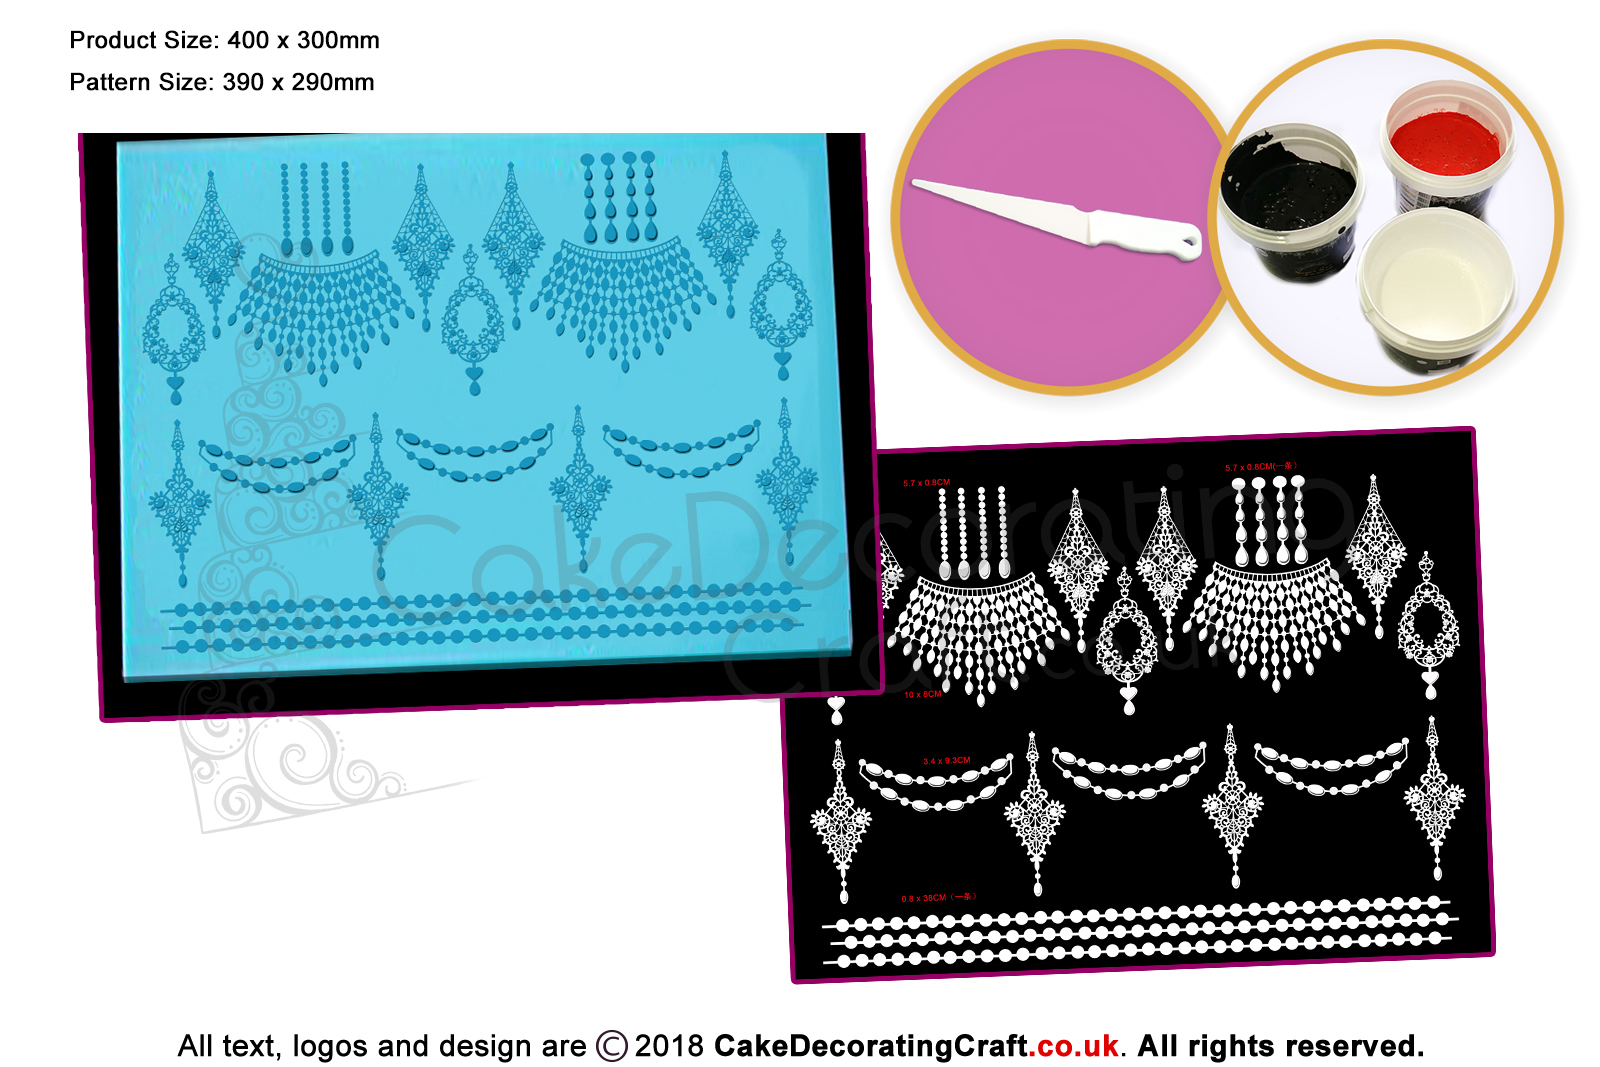 3d Necklace Cake Lace Mat Cake Decorating Starter Kit Cake